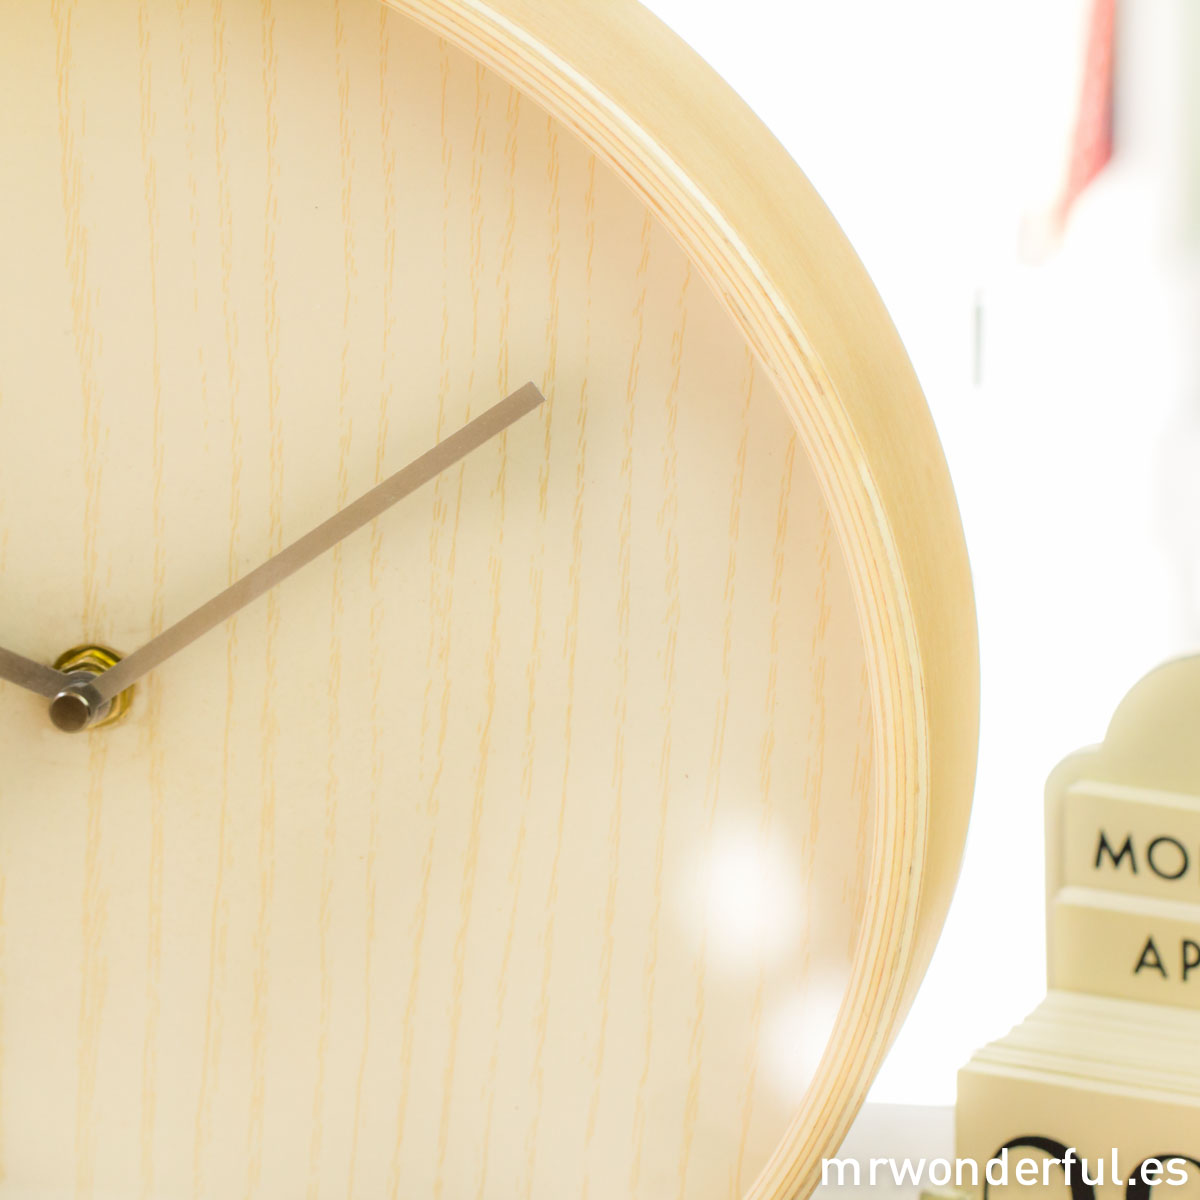 mrwonderful_FX0101_reloj-pared-madera_color-natural-18